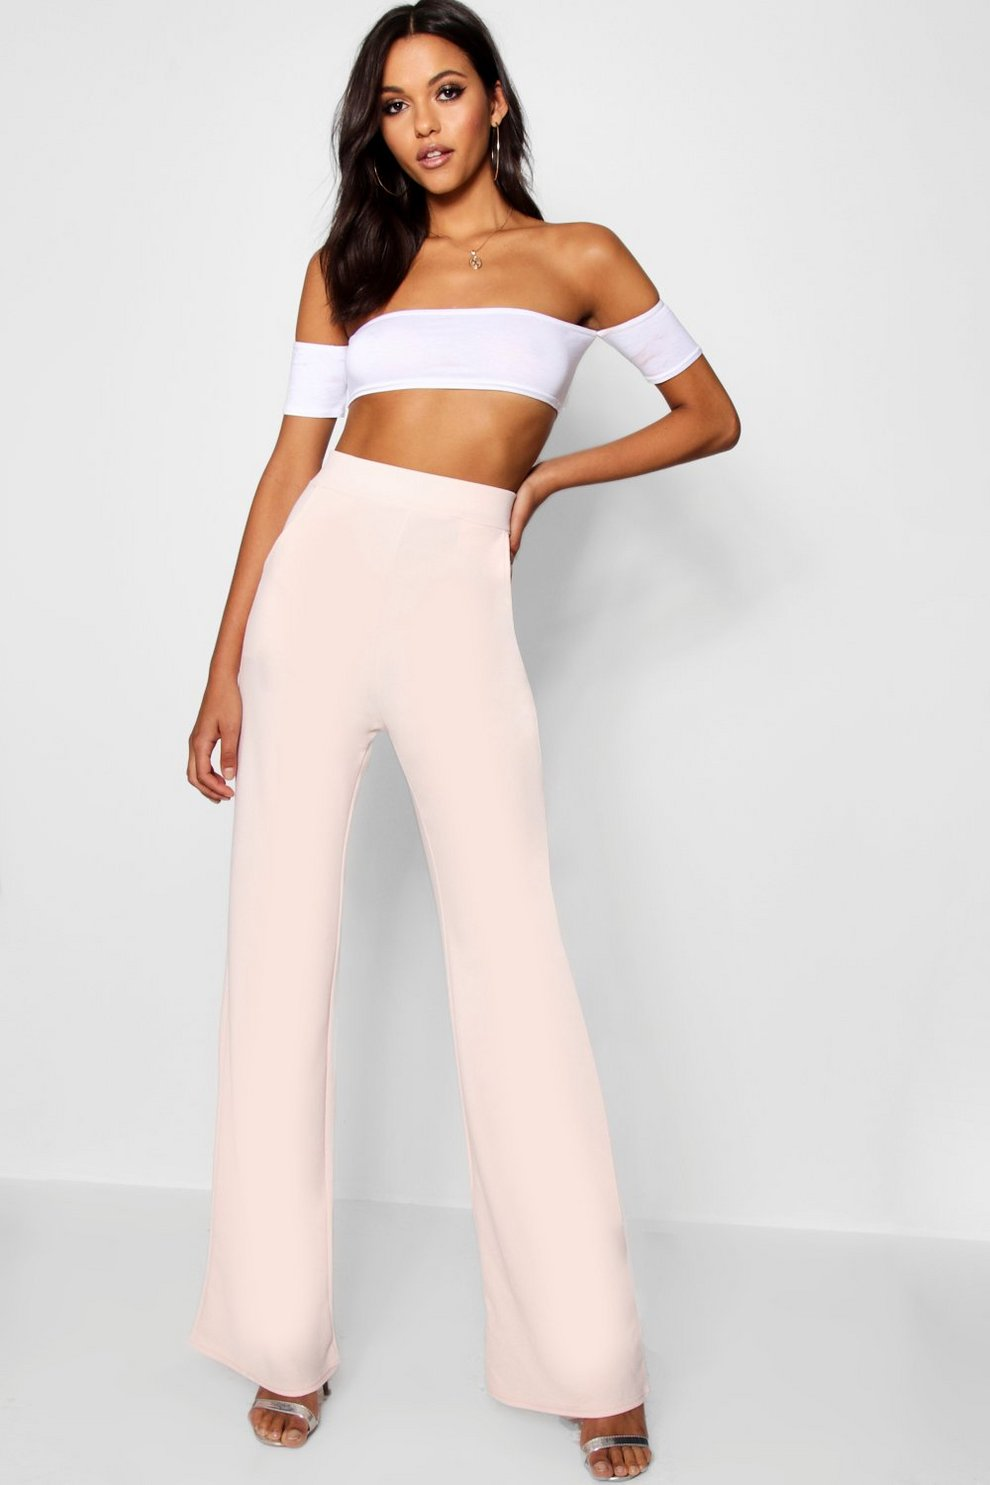 New Sale Online Fast Delivery Boohoo Tall High Waisted Wide Leg Trousers Cheap Sale Fake UwU19J0